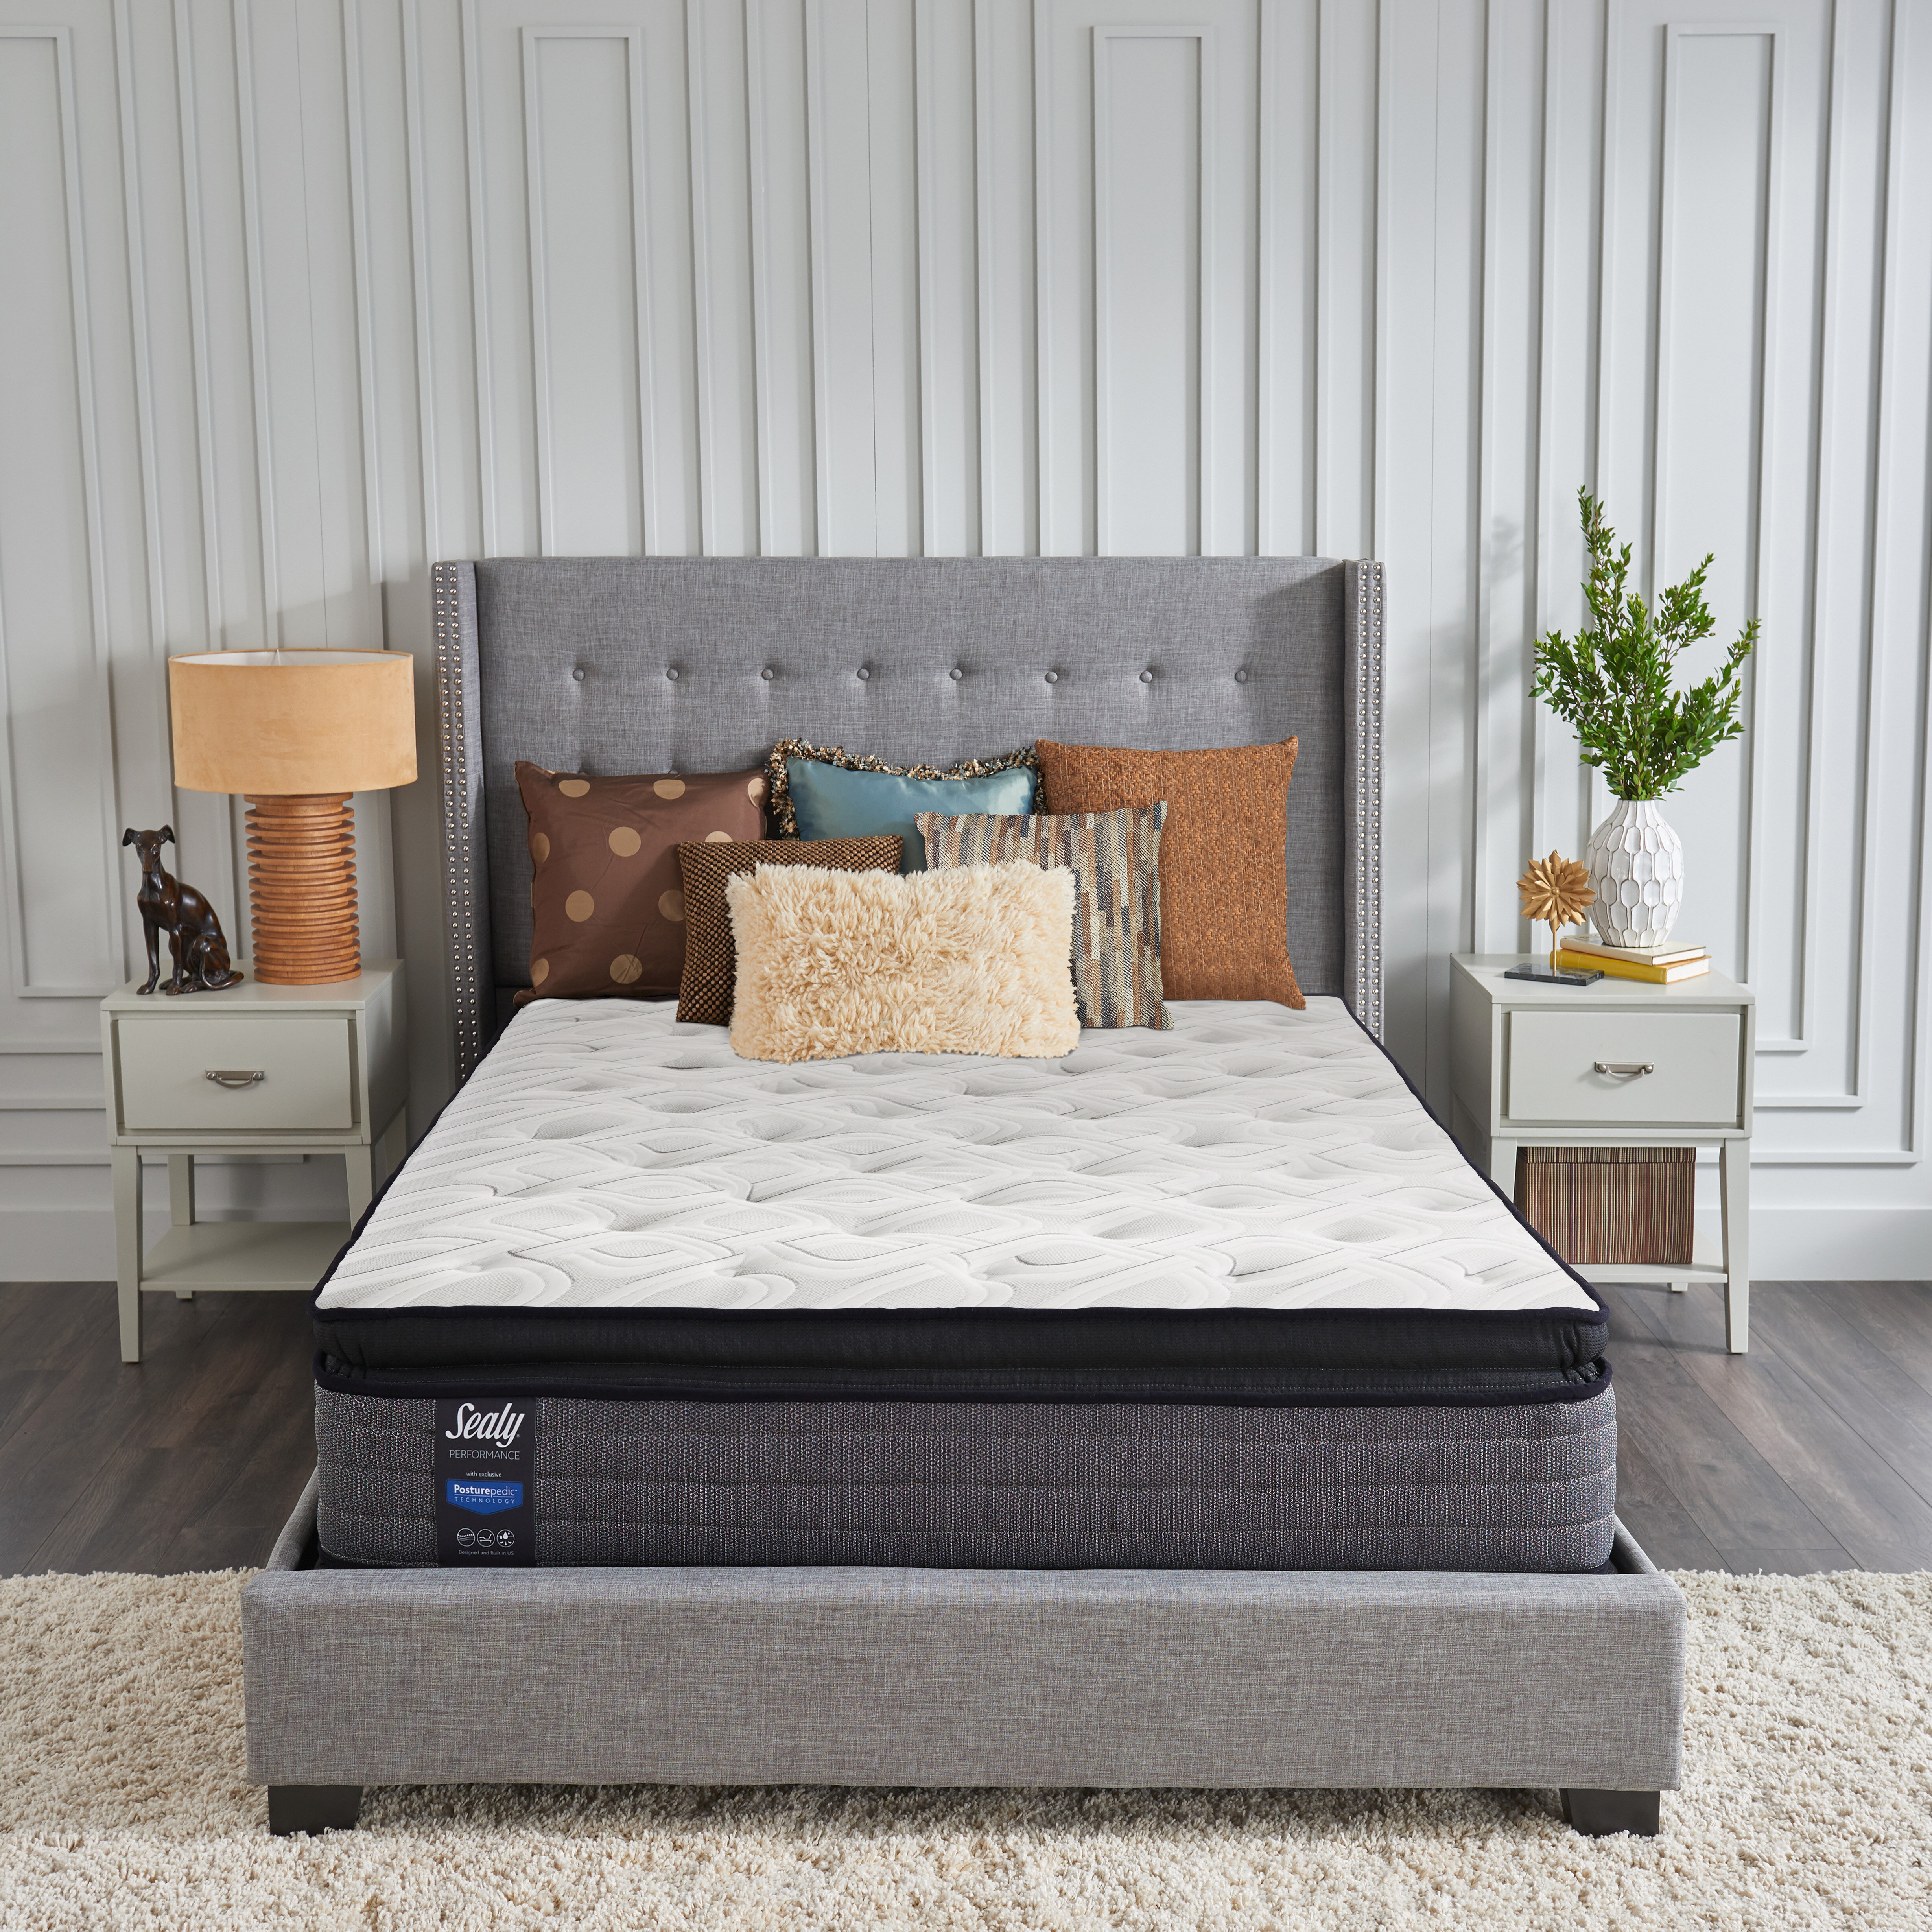 Sealy Response Performance 14 Plush Pillow Top Mattress Reviews Wayfair